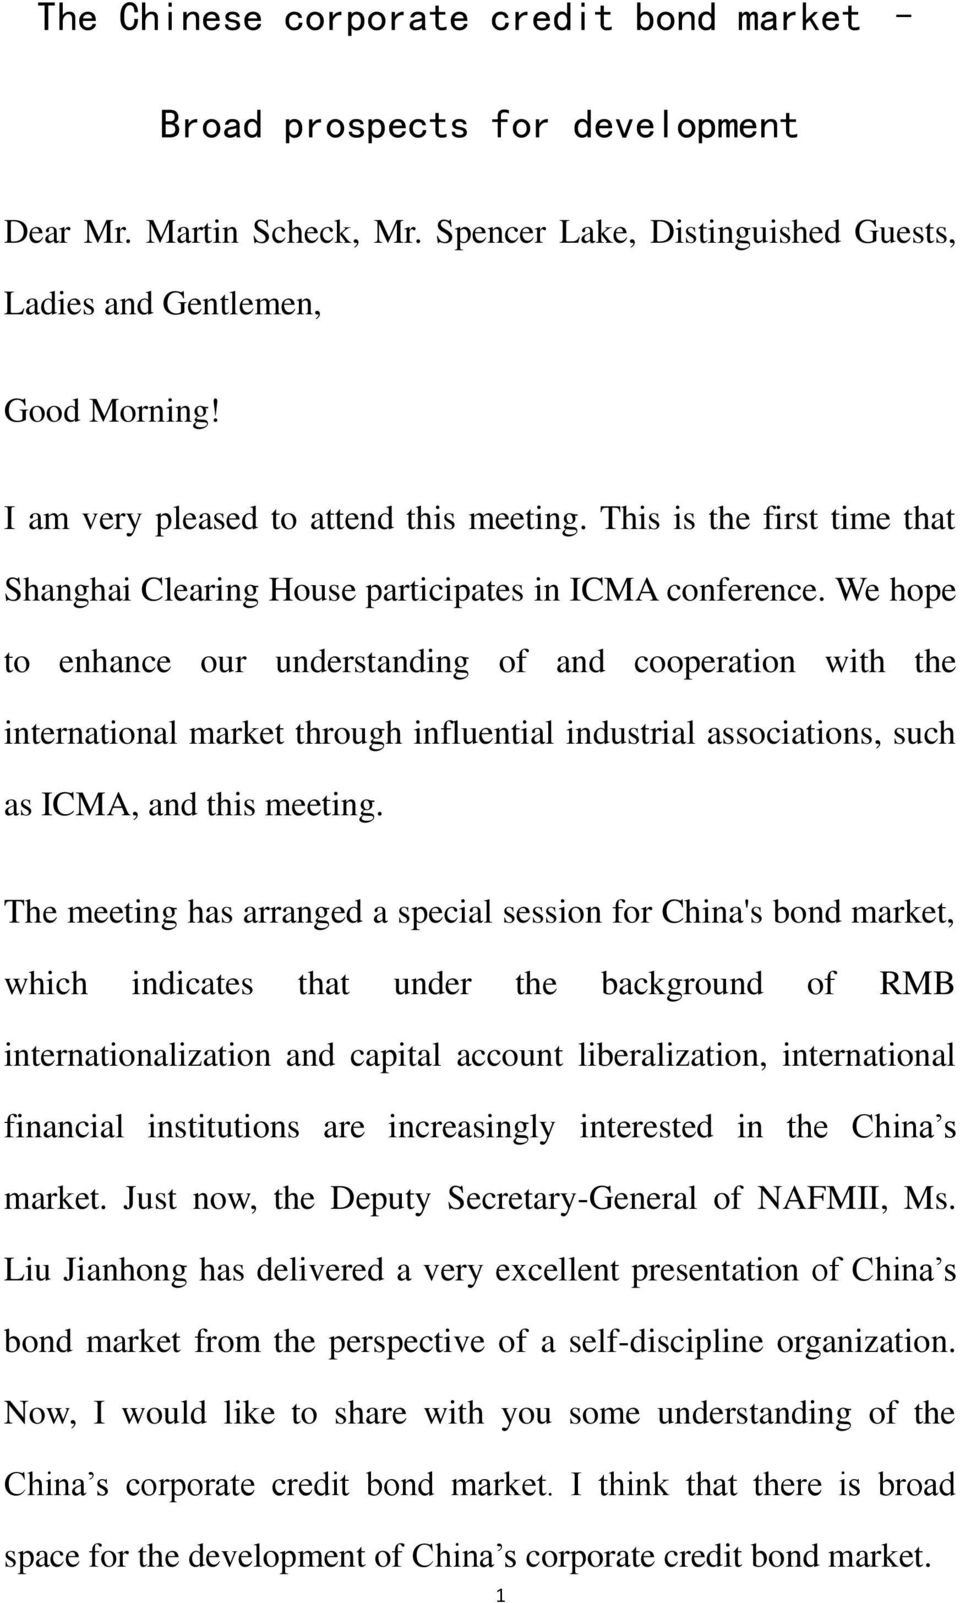 We hope to enhance our understanding of and cooperation with the international market through influential industrial associations, such as ICMA, and this meeting.